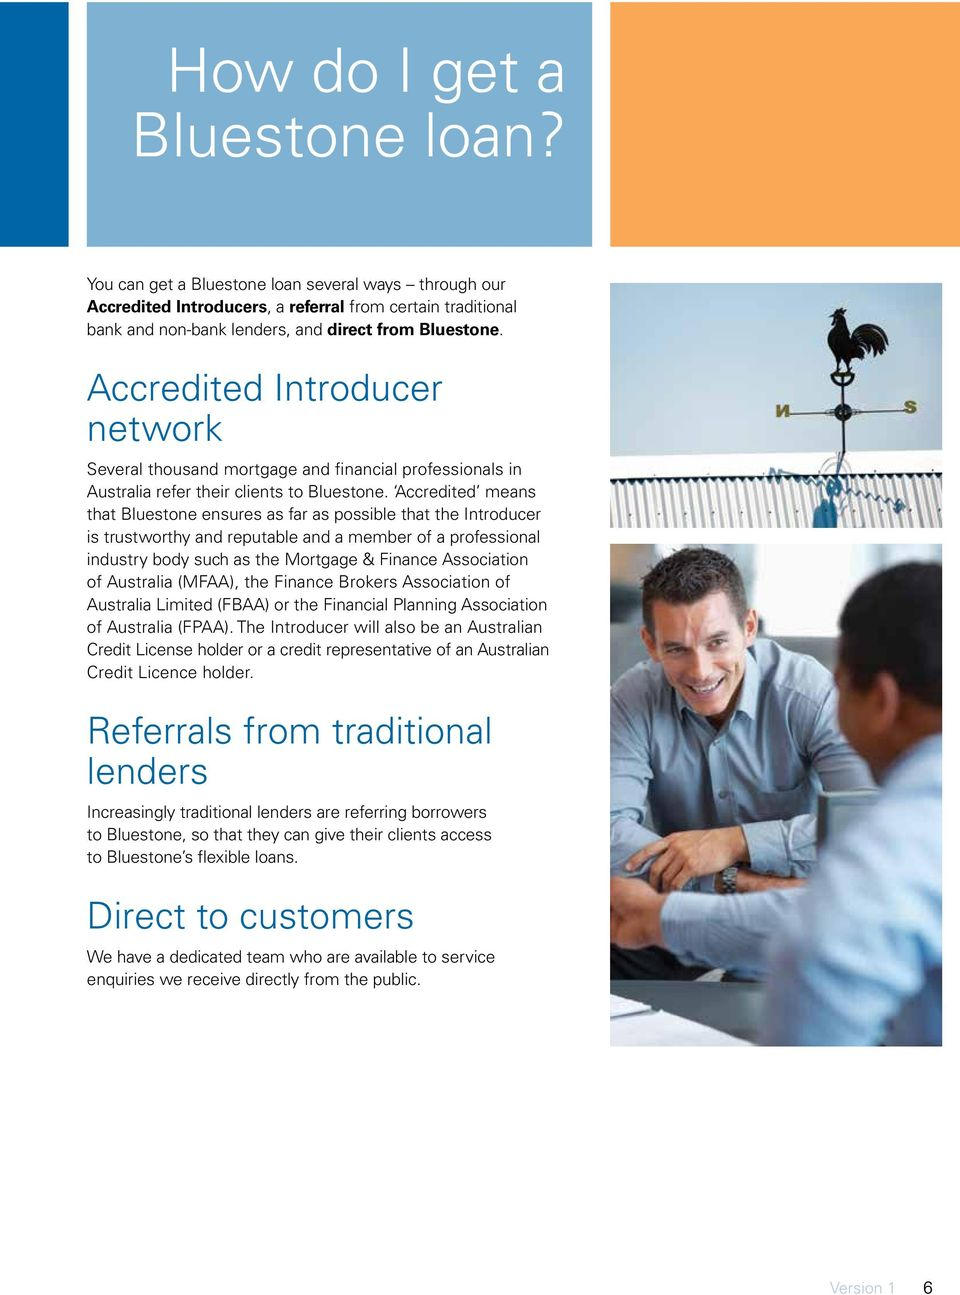 Accredited means that Bluestone ensures as far as possible that the Introducer is trustworthy and reputable and a member of a professional industry body such as the Mortgage & Finance Association of